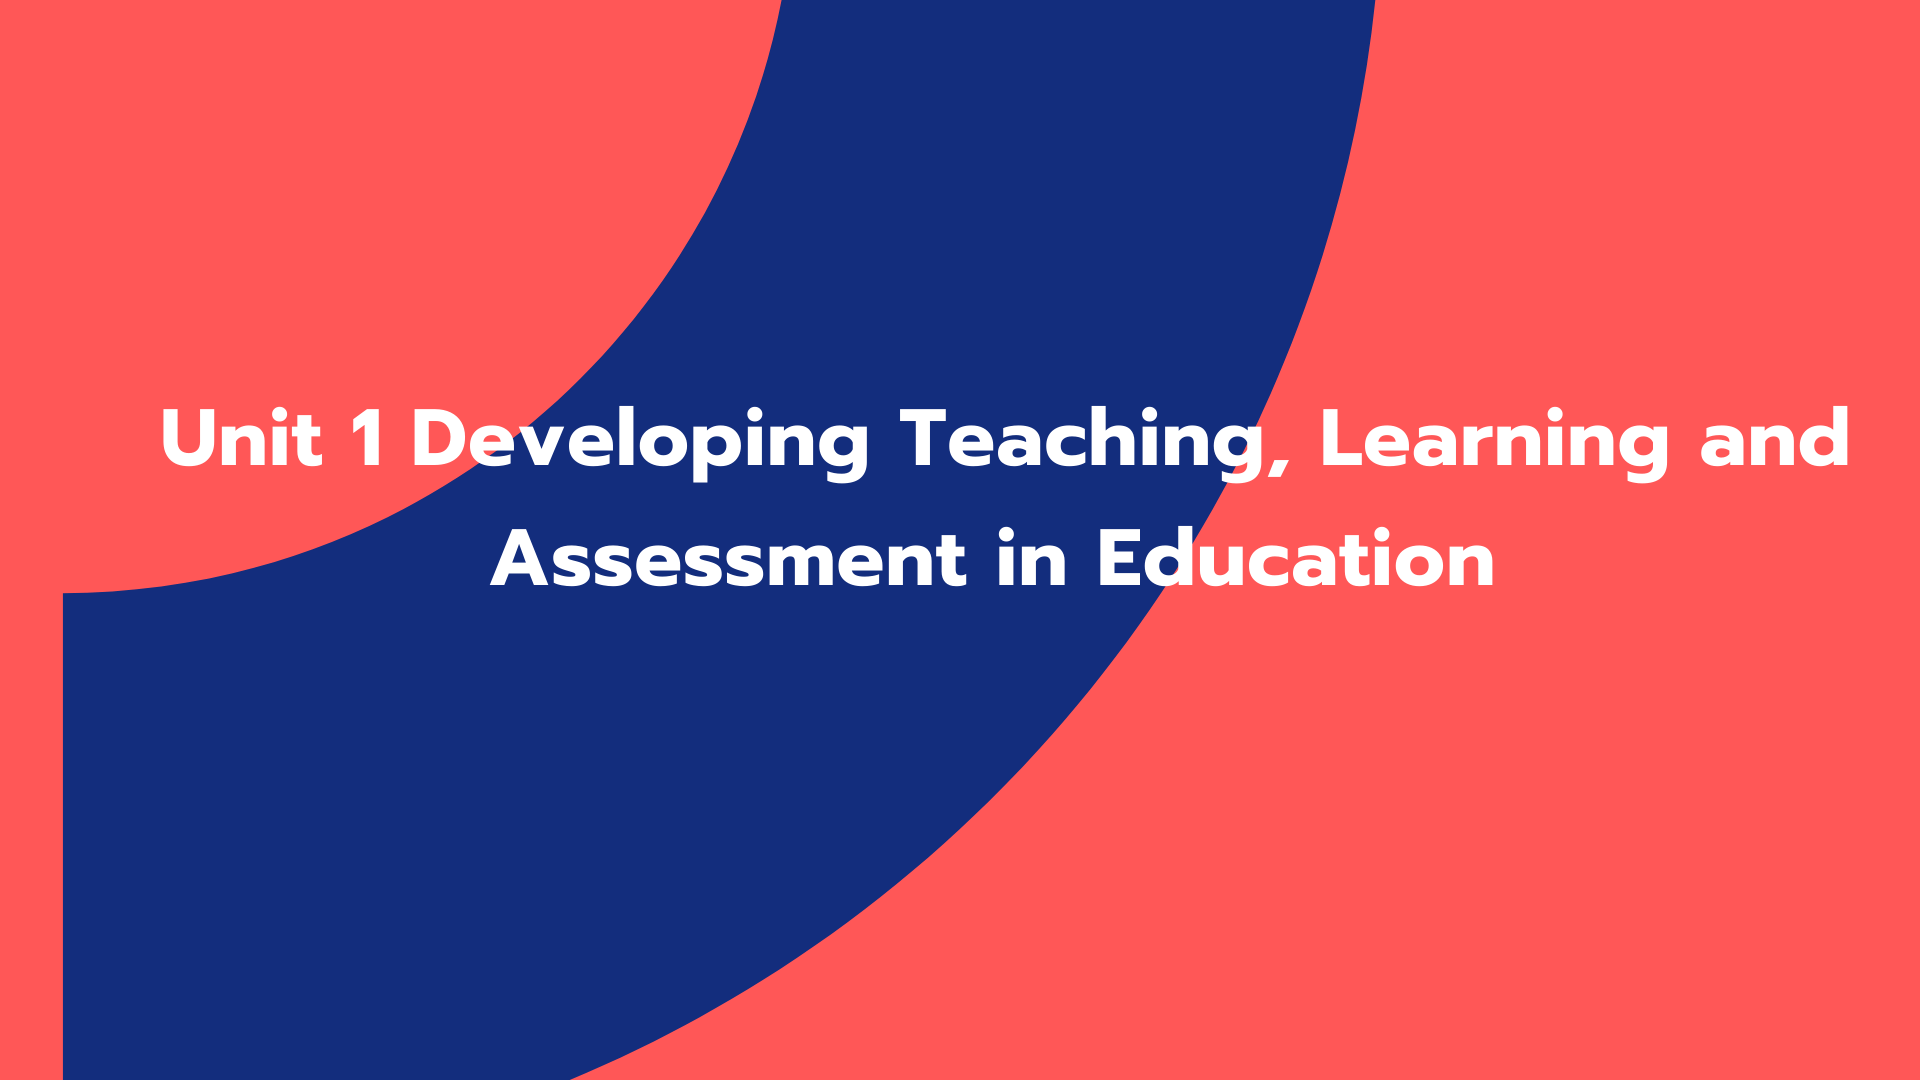 Unit 1 Developing Teaching, Learning and Assessment in Education